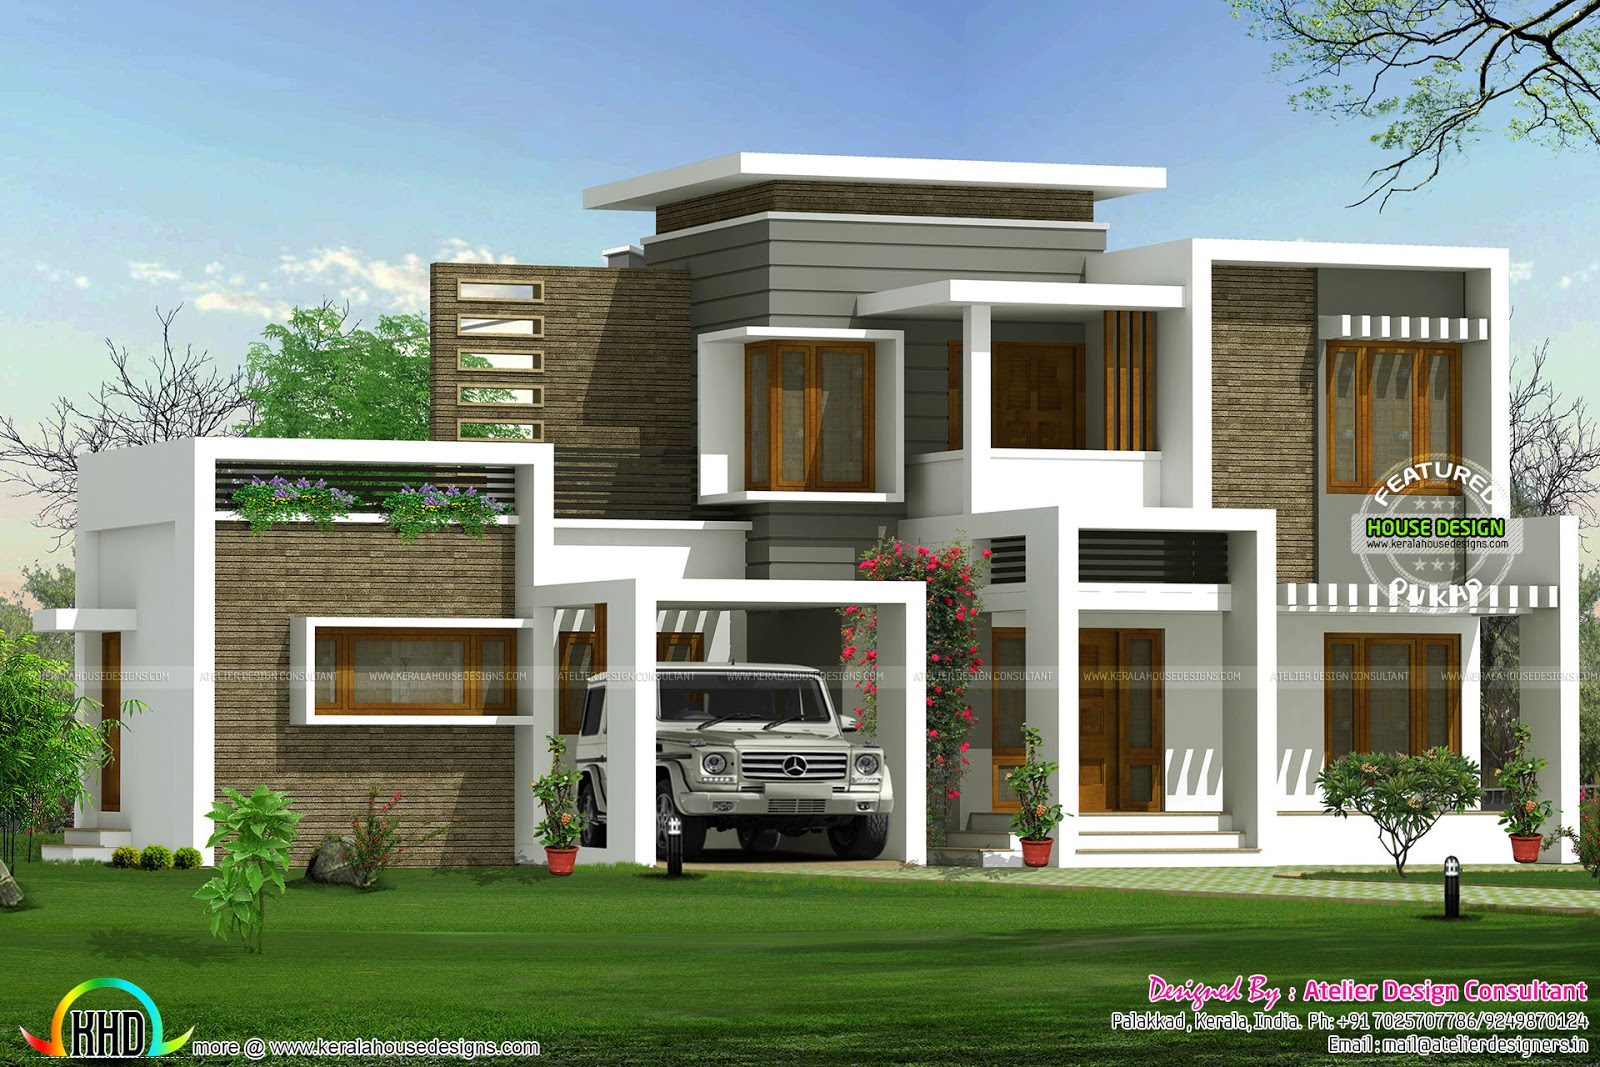 Beautiful box type contemporary home kerala home design and floor plans - Key of create perfect contemporary style ...